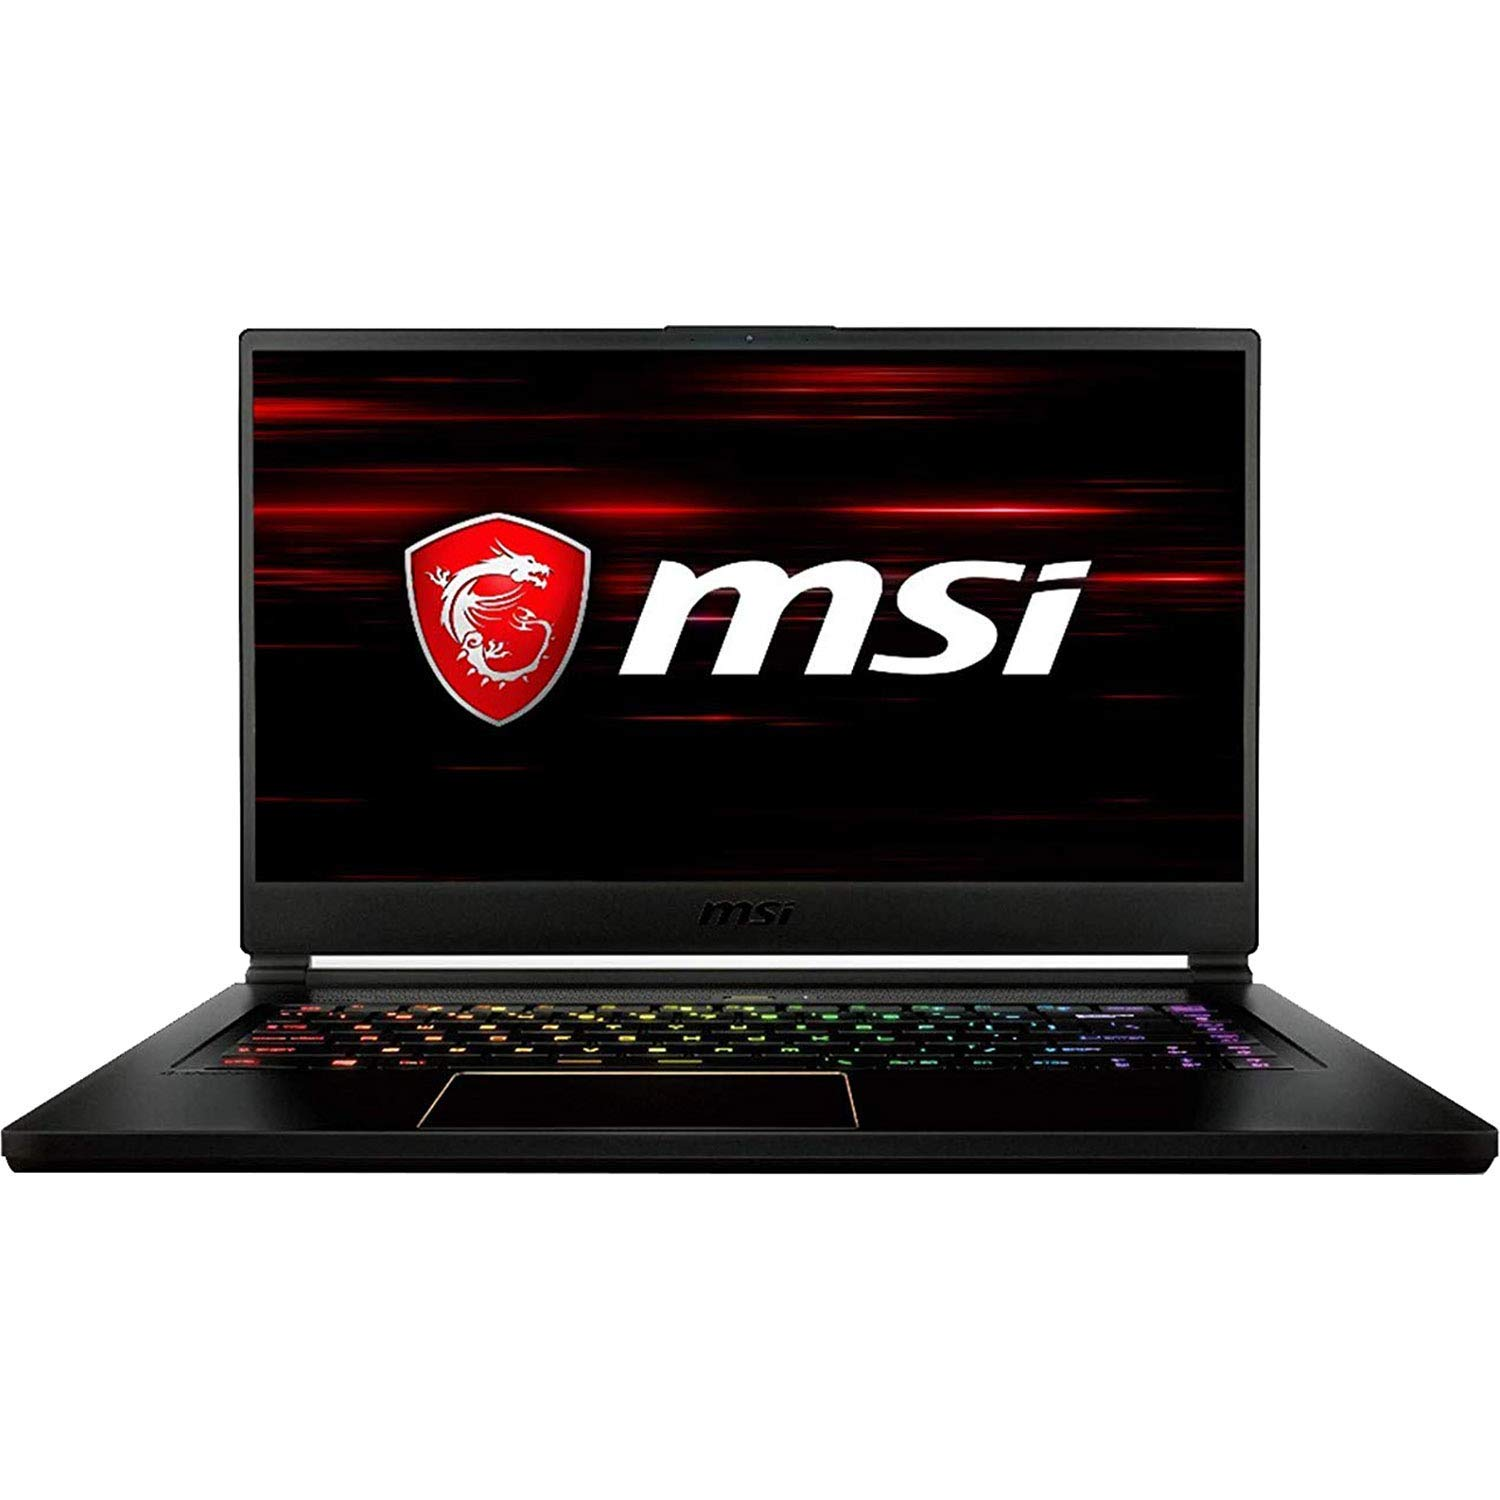 MSI GS65 Stealth THIN 8RF Core i7-8750H Ram 16GB Windows 10